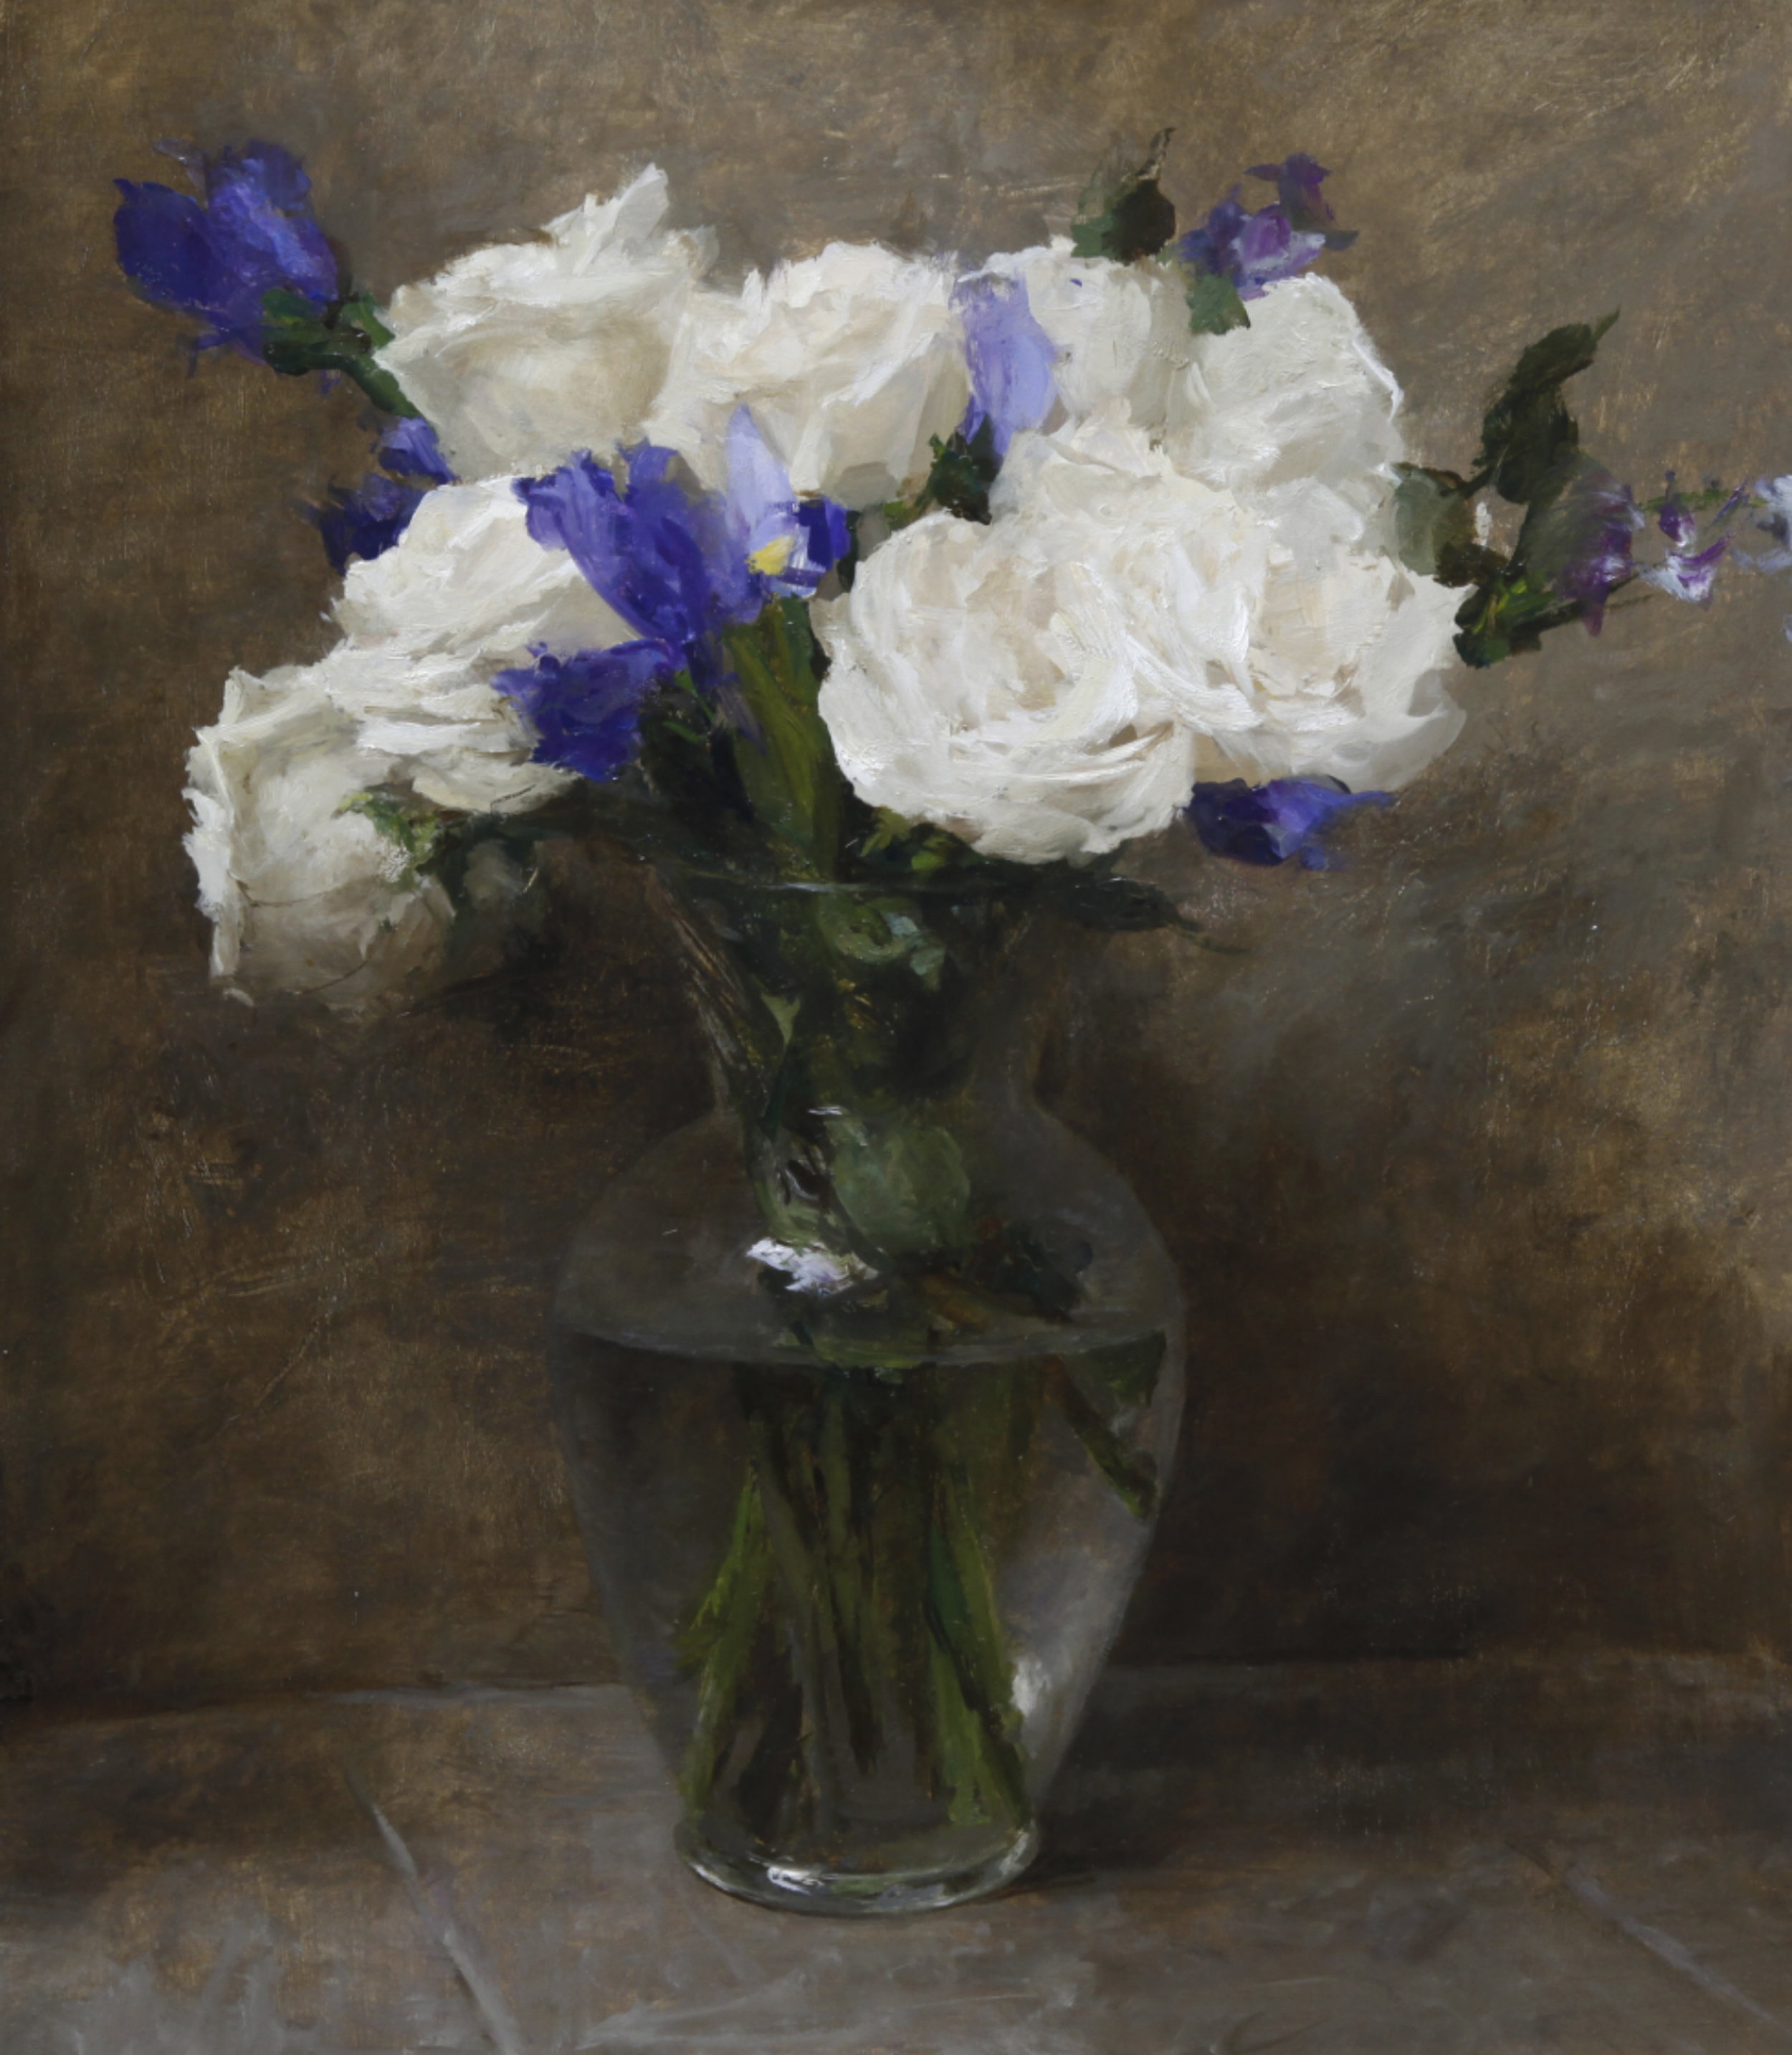 """(SOLD) """"White Roses with Blue Irises"""" 17.5″x15″ Oil"""